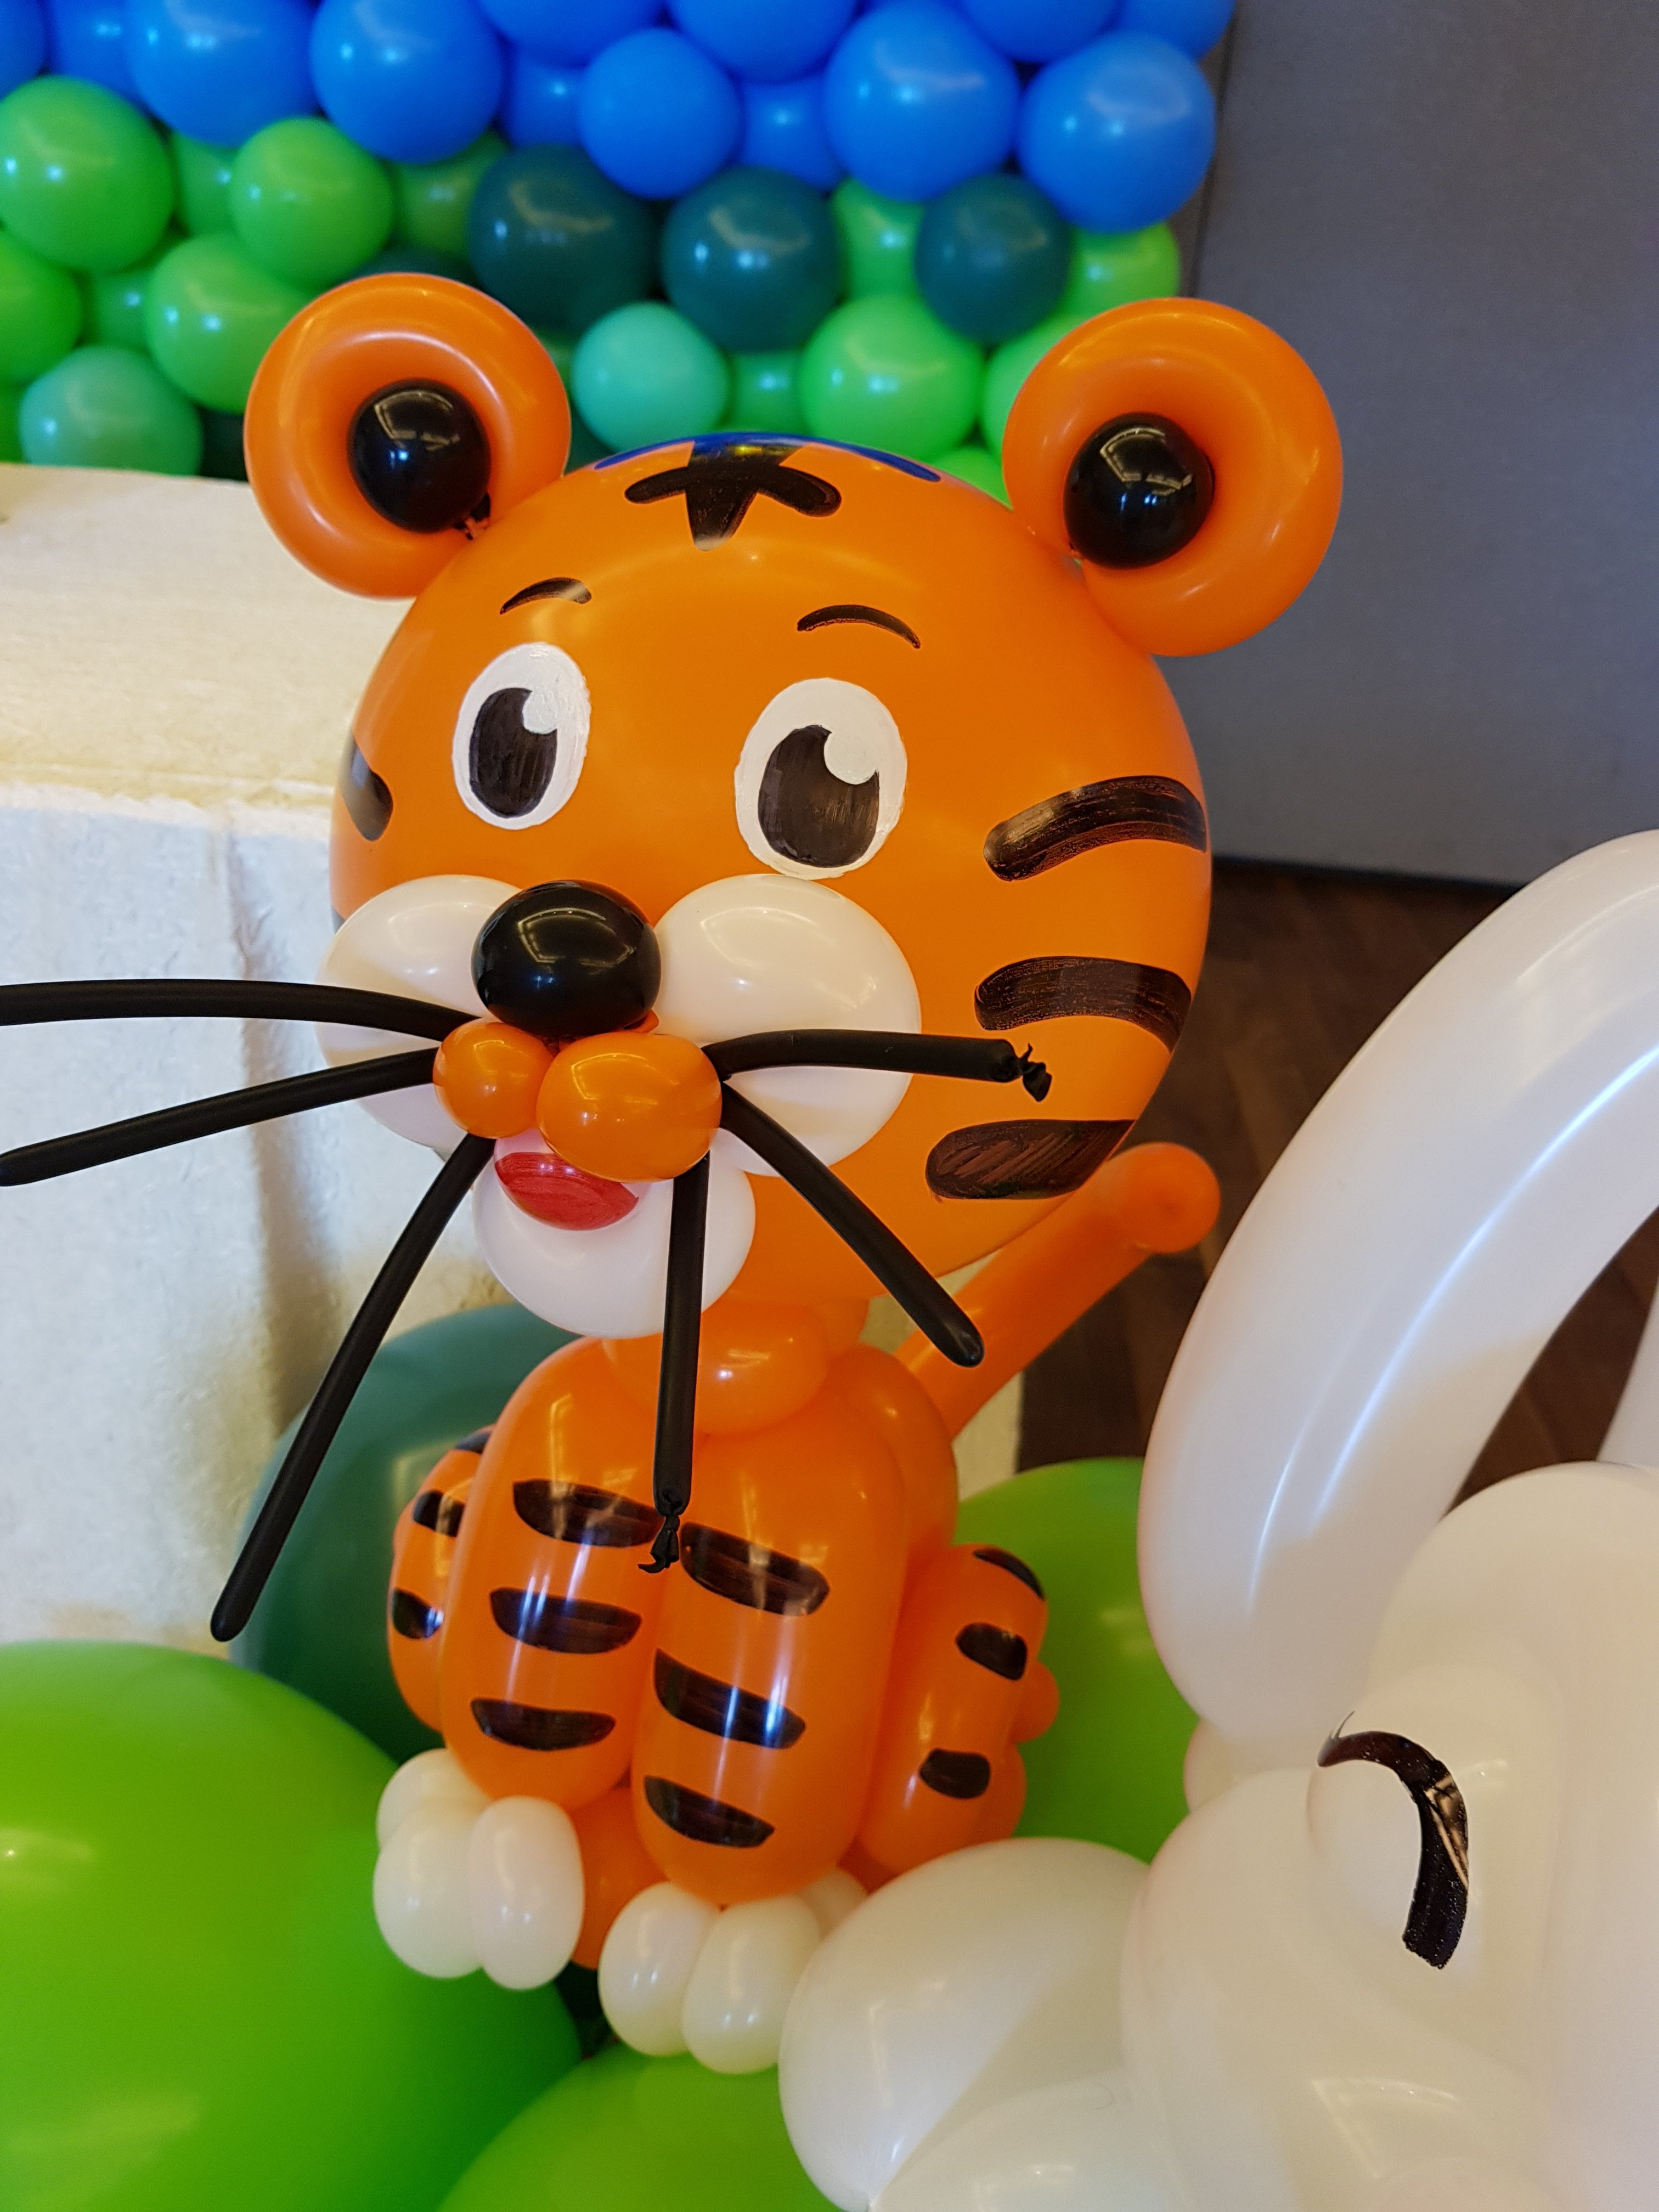 , Animal themed balloon backdrop for a birthday party!, Singapore Balloon Decoration Services - Balloon Workshop and Balloon Sculpting